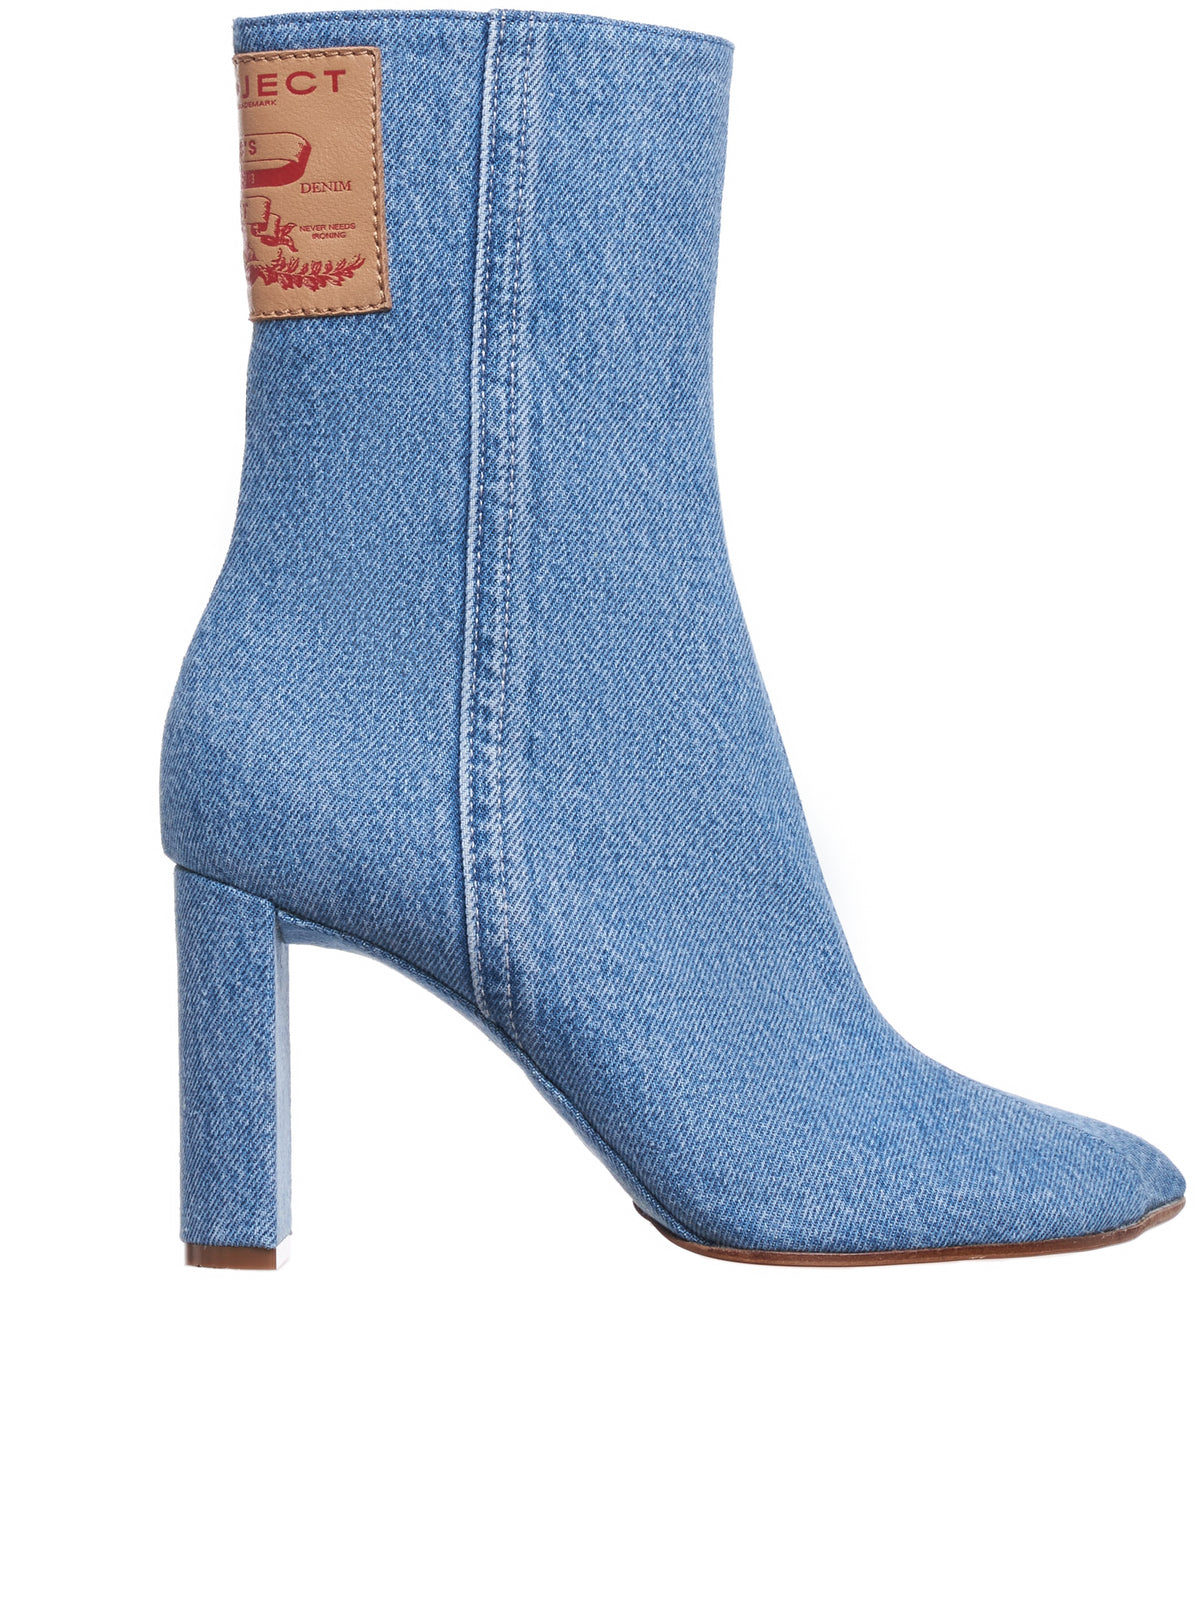 Denim Ankle Boots (WBOOT10-S18-D13-LIGHT-ICE-BLUE)